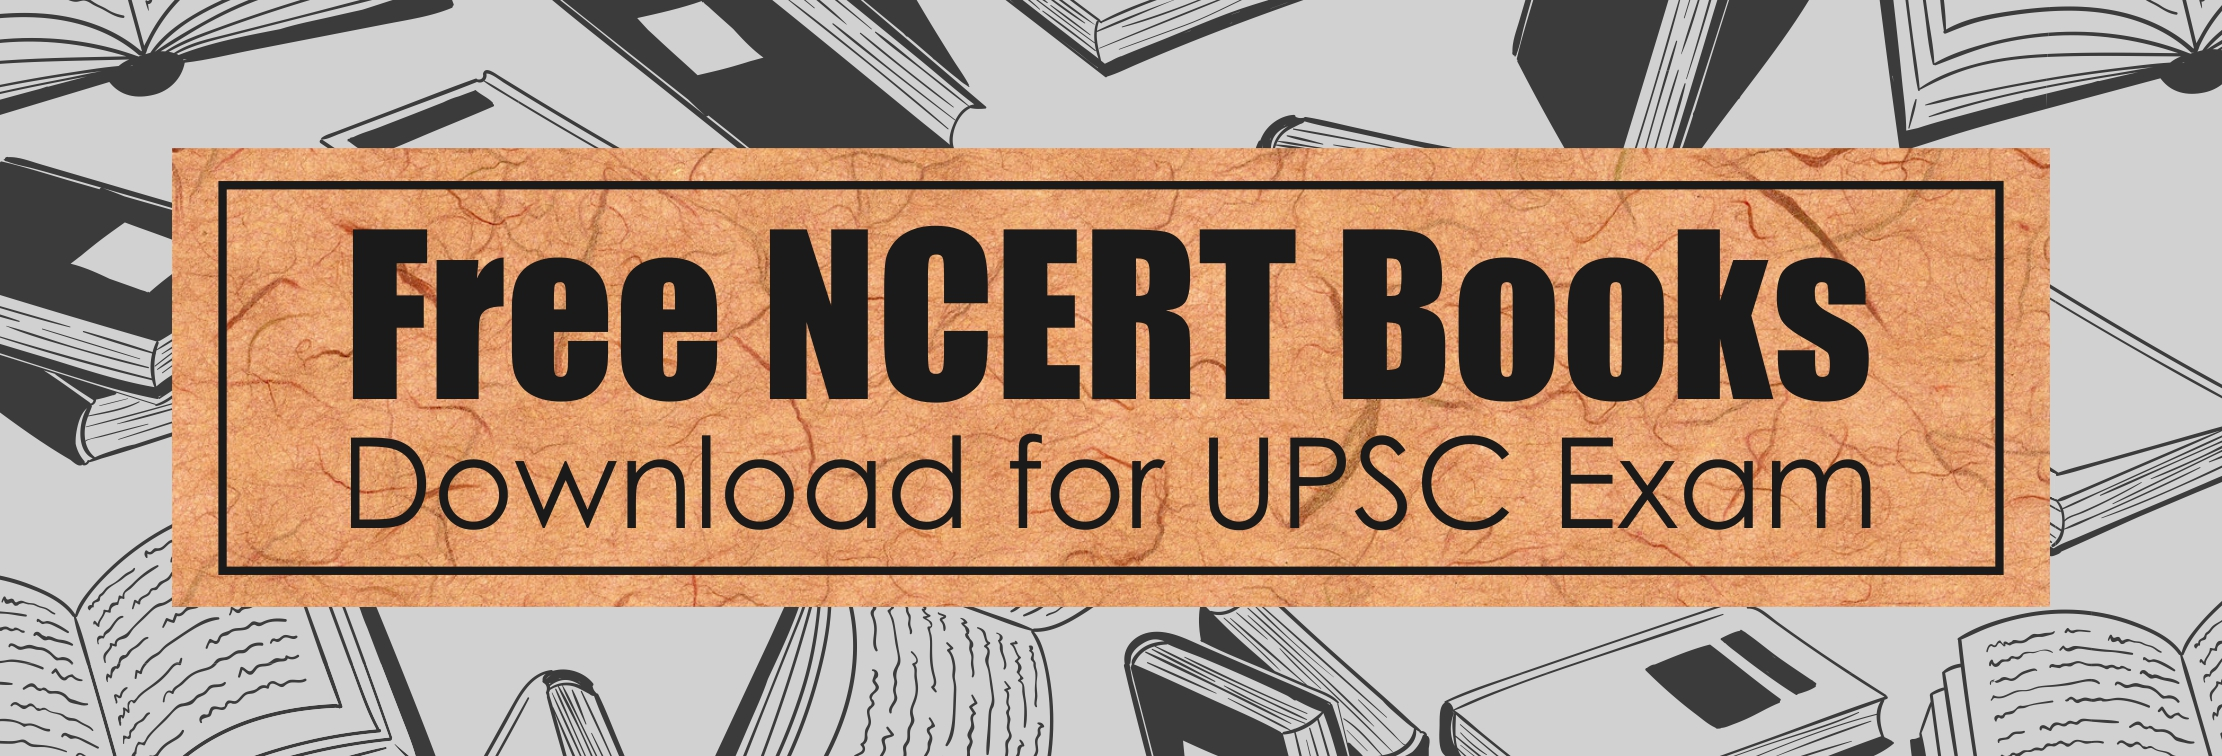 Ncert books free downloads pdf for upsccbse exam free ncert books pdf download upsc exam ccuart Choice Image